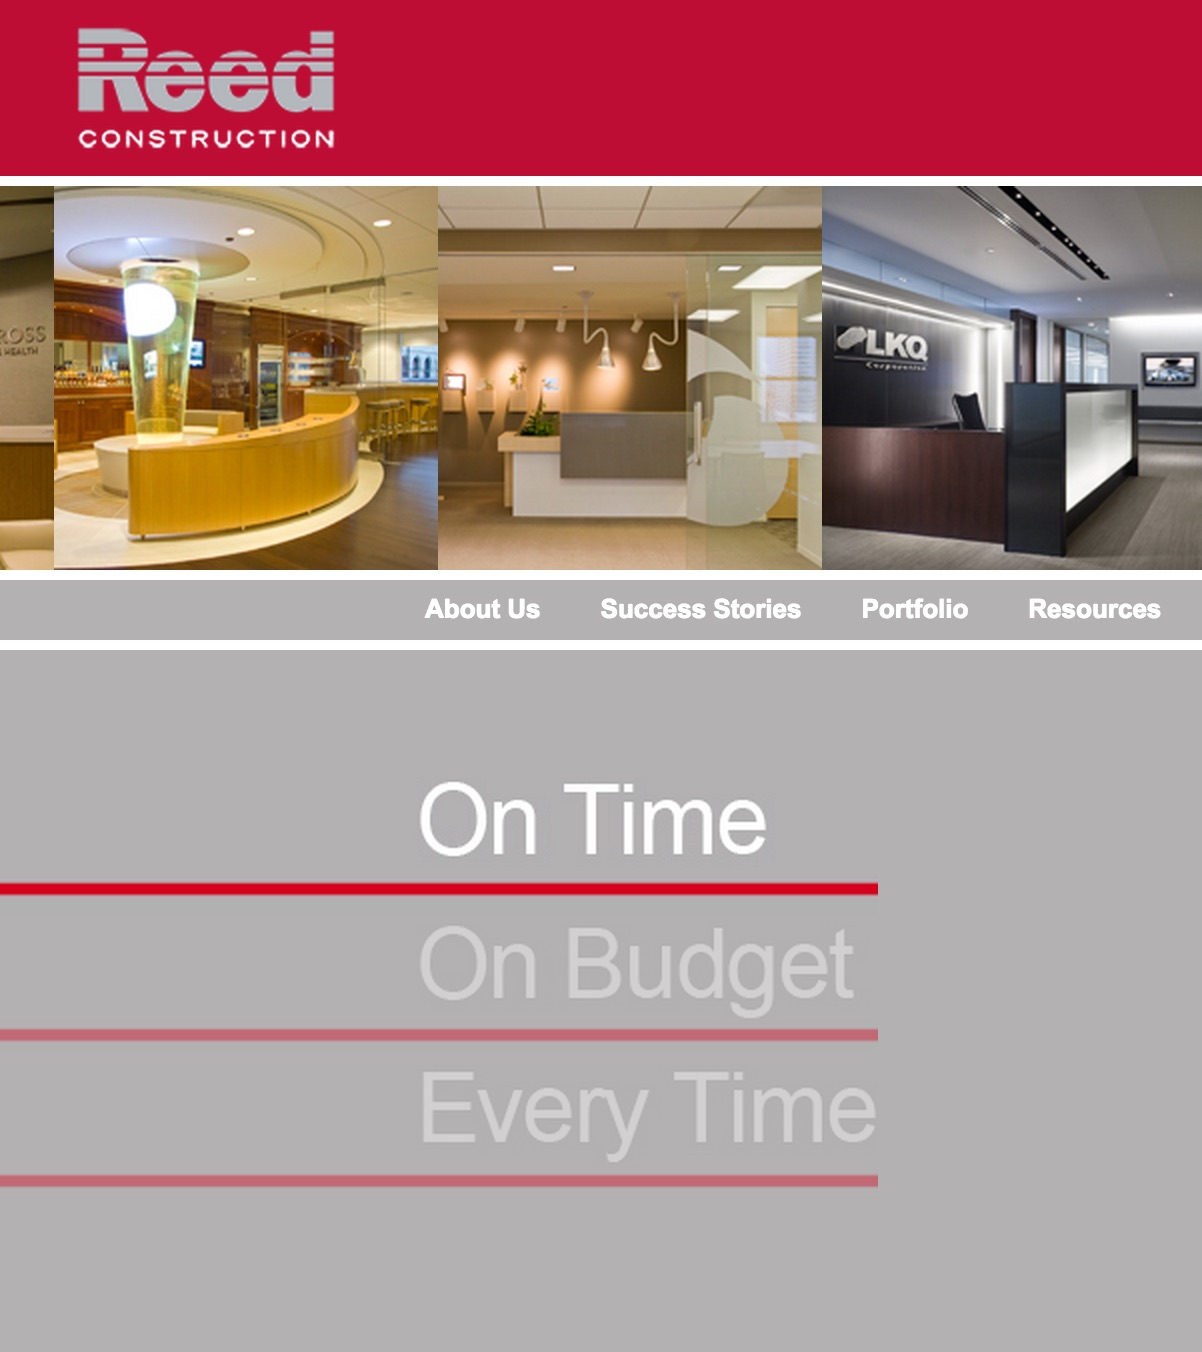 reed construction webpage